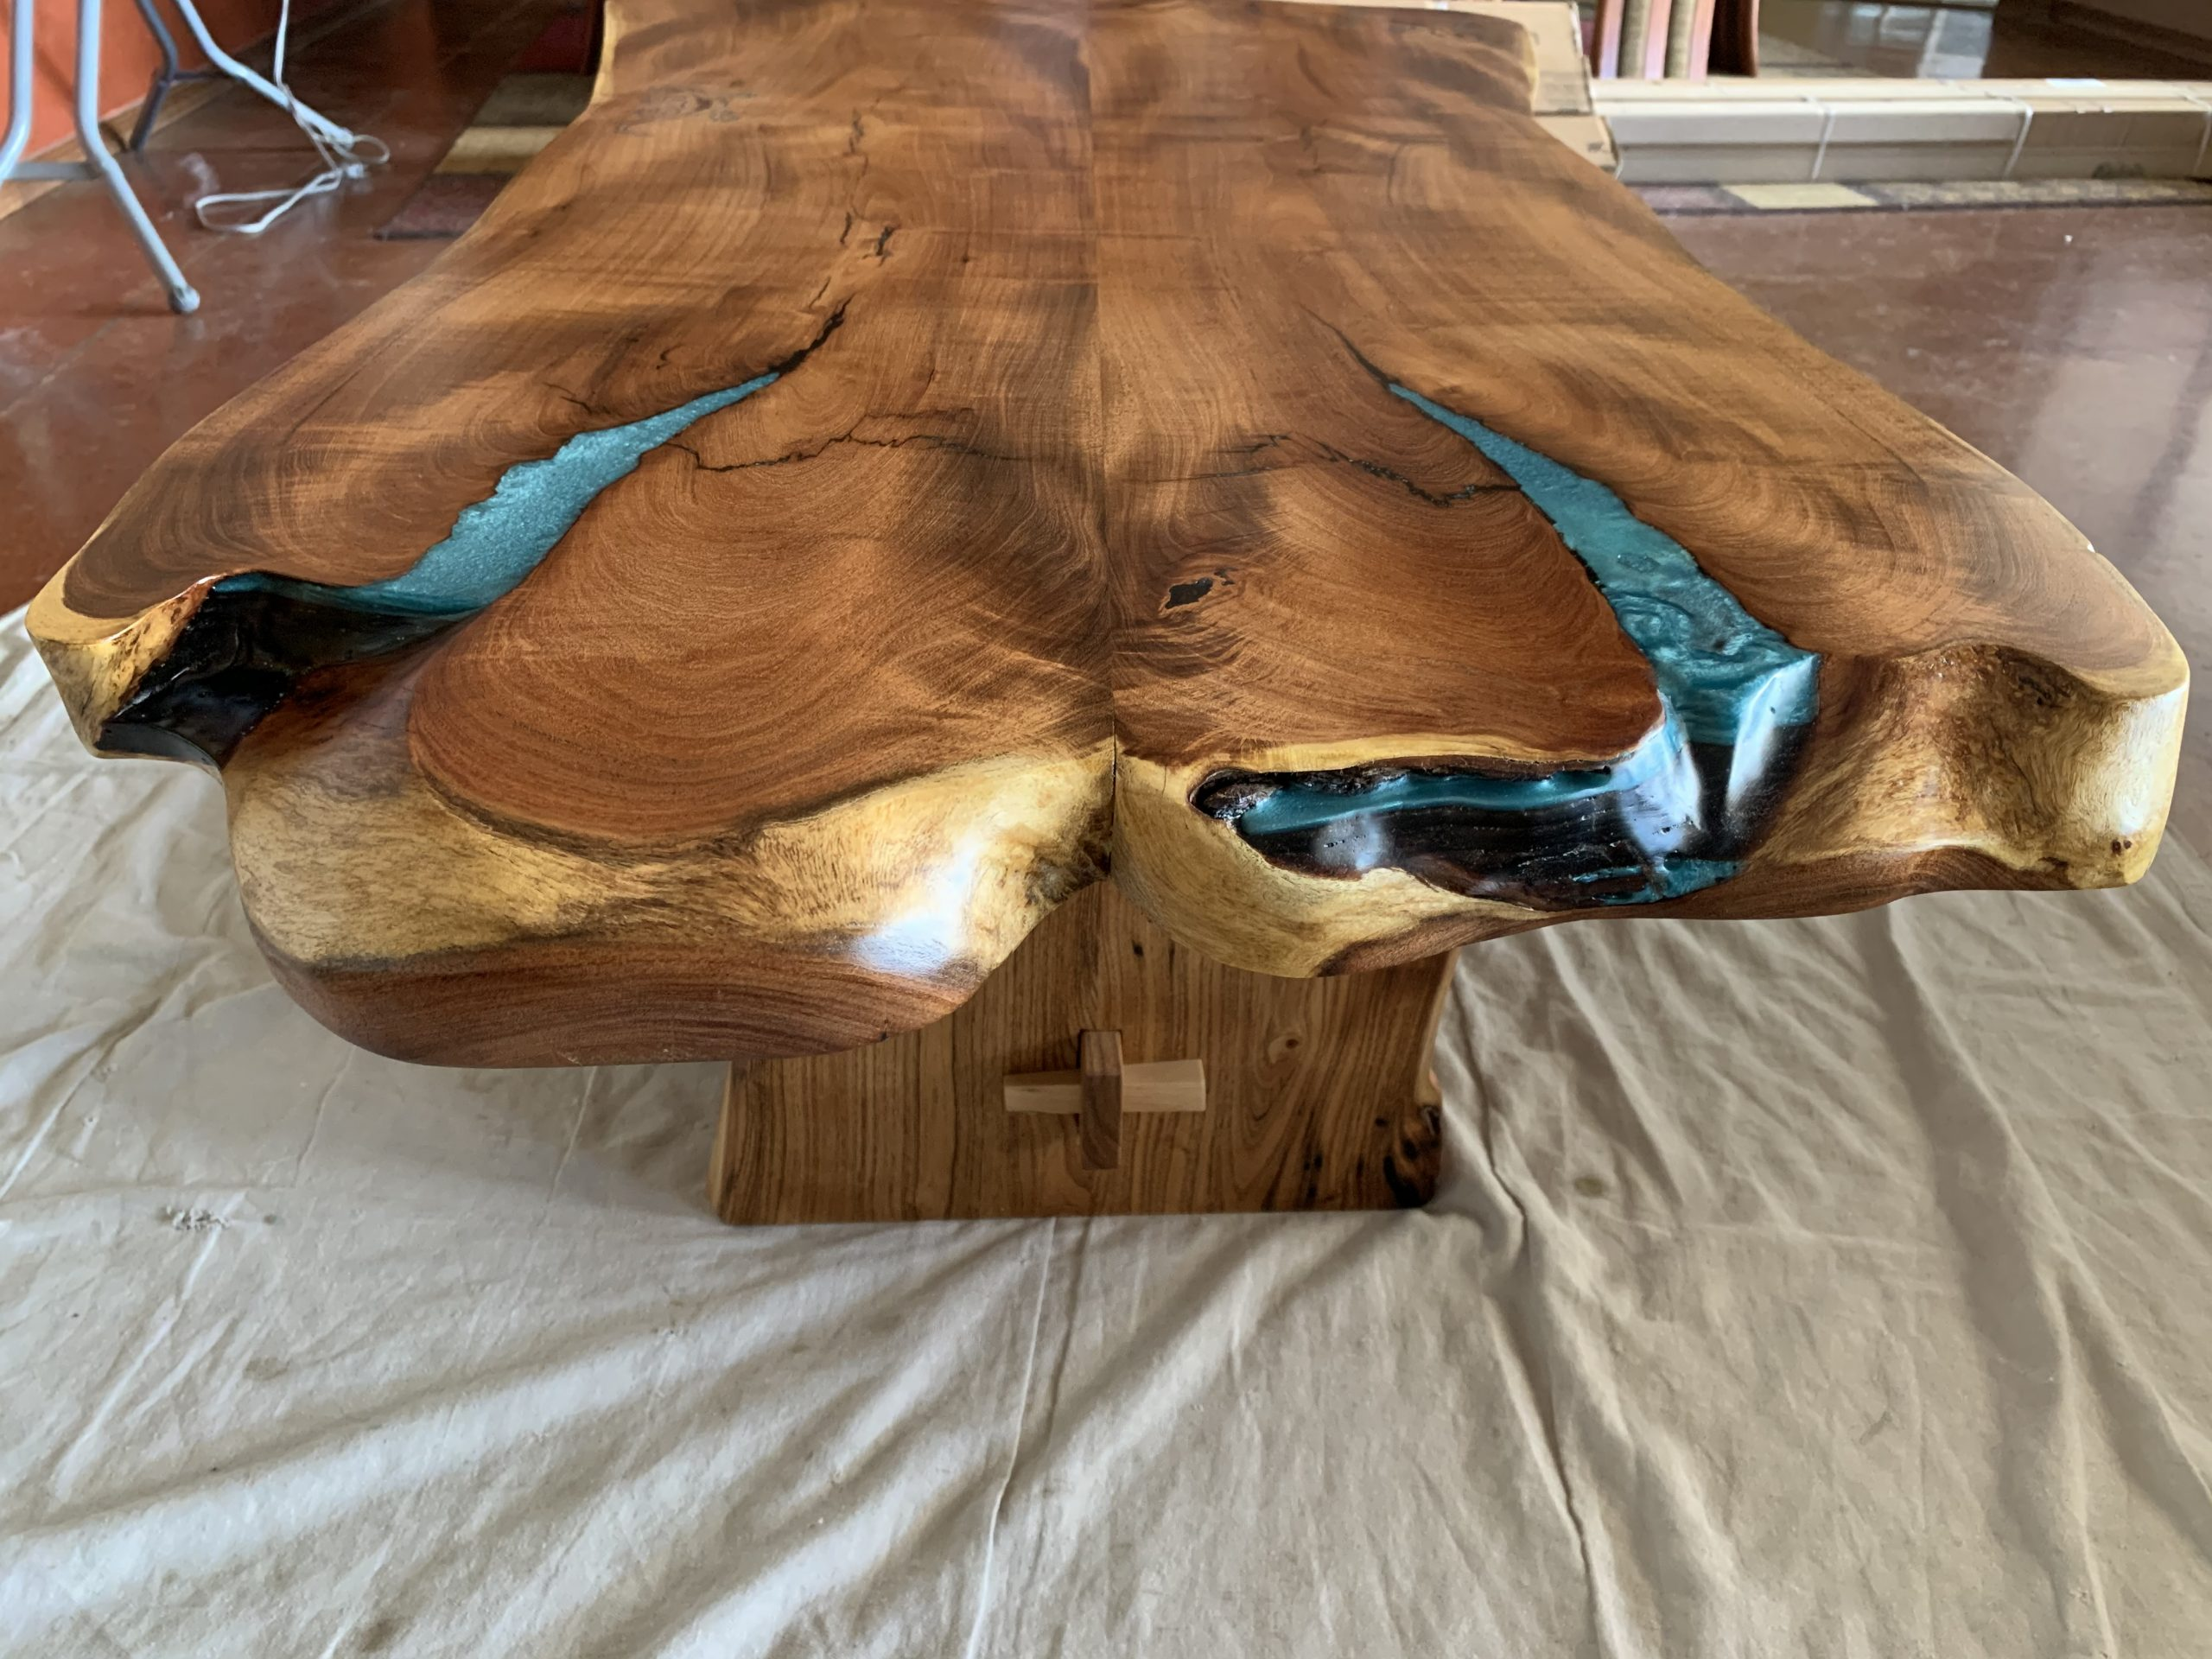 Mesquite Slab Coffee Table - End with some colored epoxy work